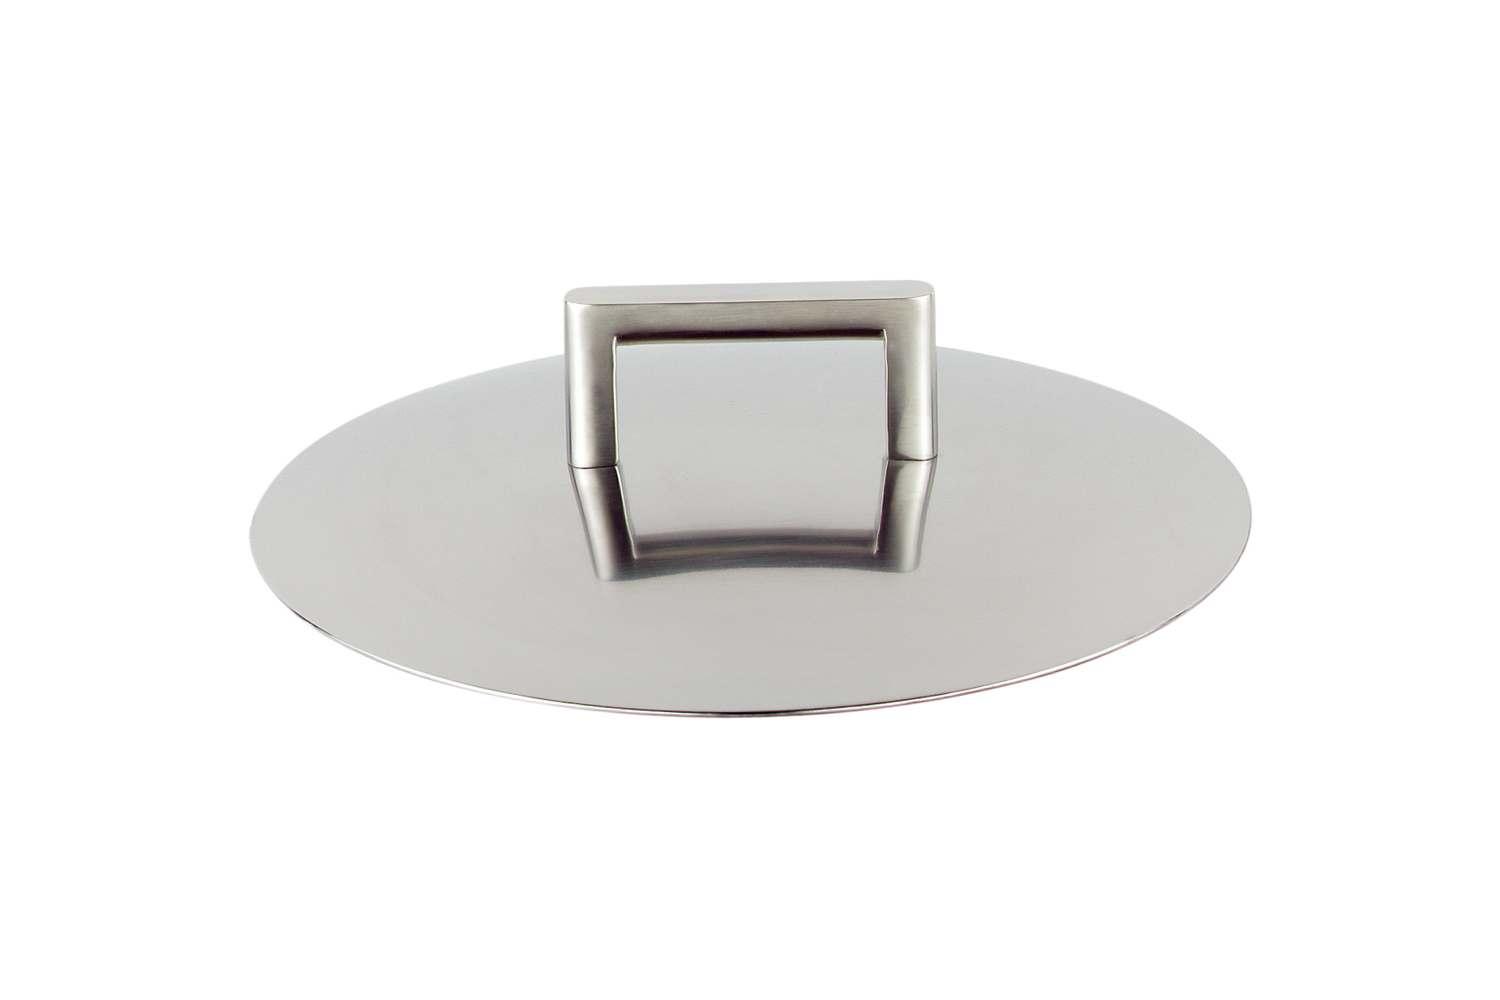 Demeyere John Pawson Stainless Steel 9.4 inch Lid